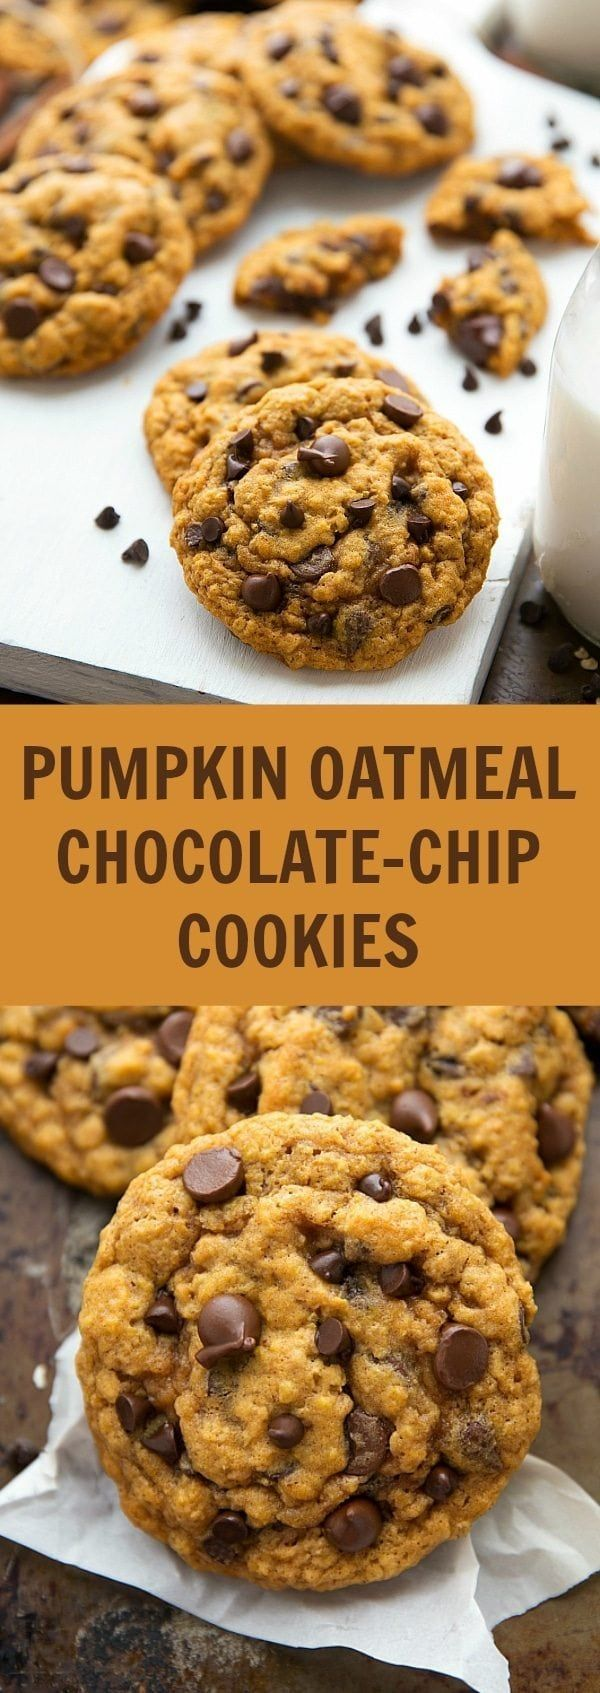 Pumpkin Oatmeal Chocolate-Chip Cookies (Non-Cakey Version) | Chelsea's Messy…